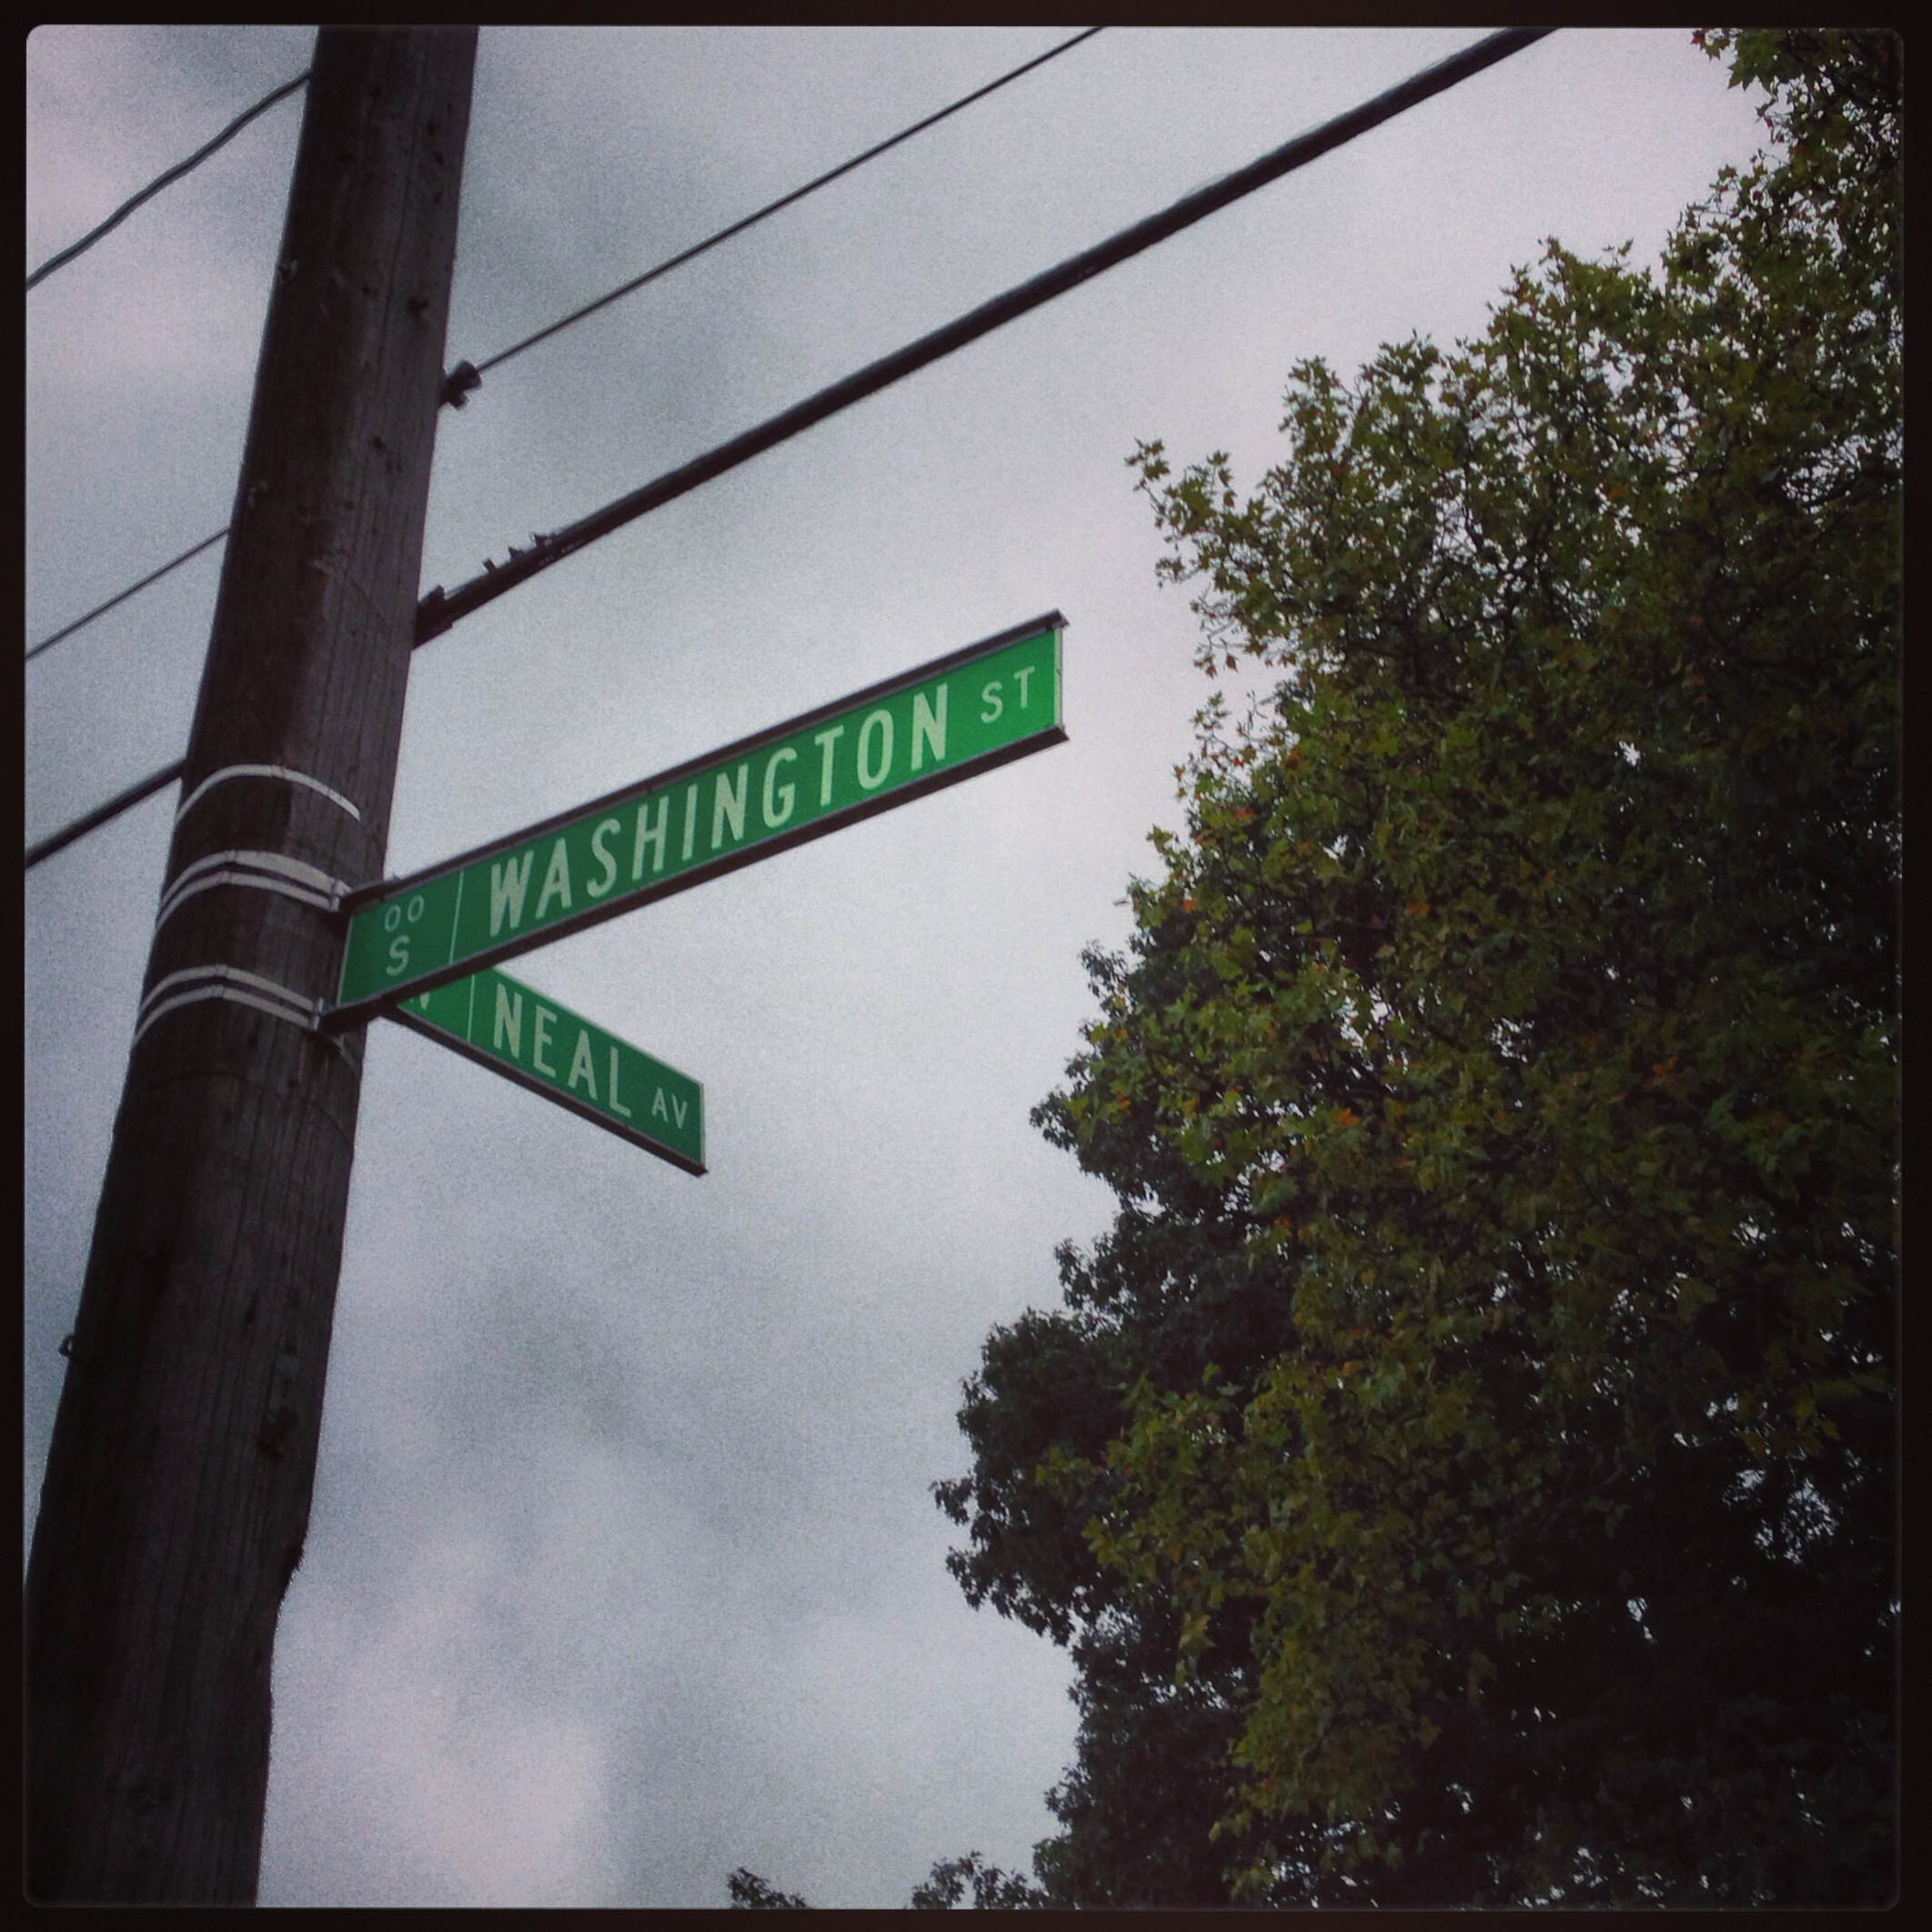 What's in a Name: Neal Avenue